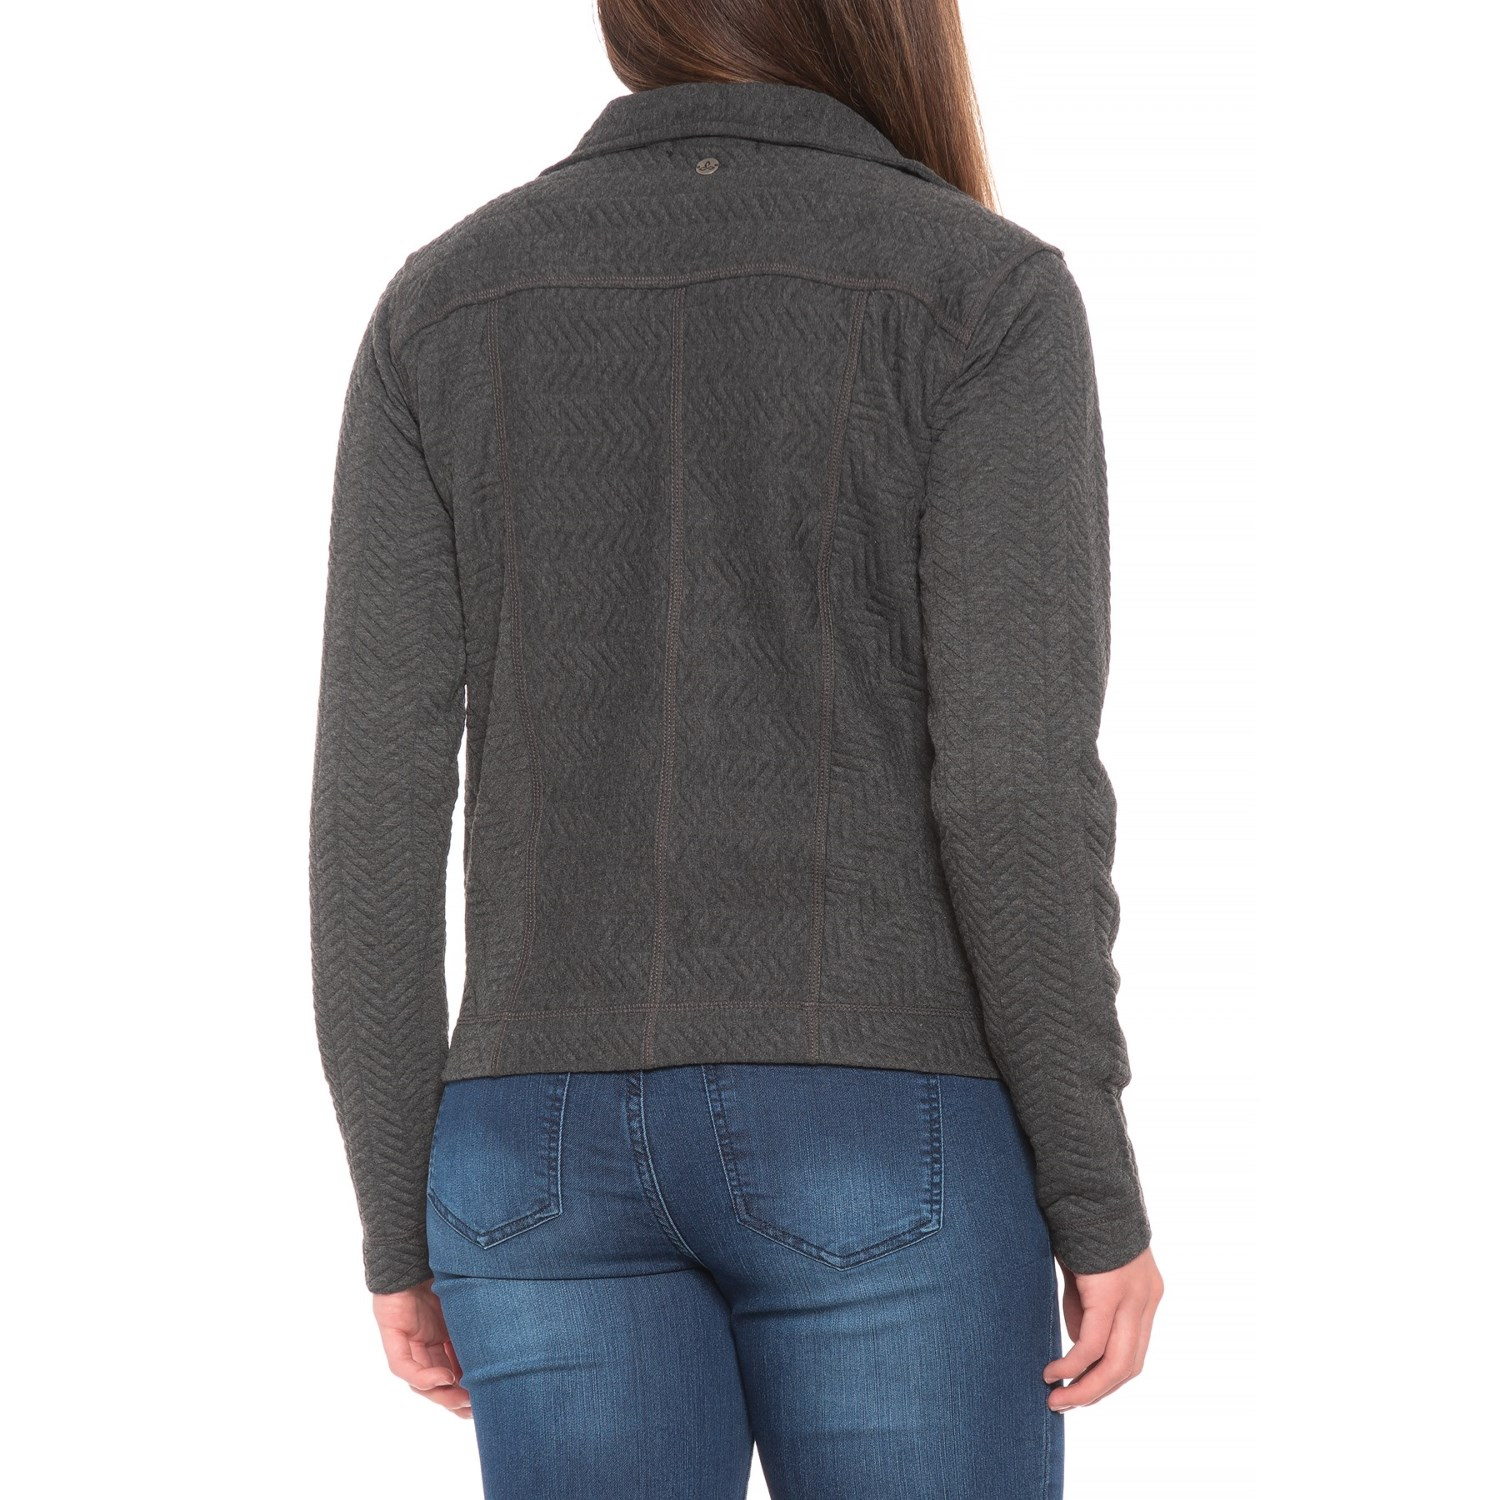 Images Of Prana Jacket Best Fashion Trends And Models